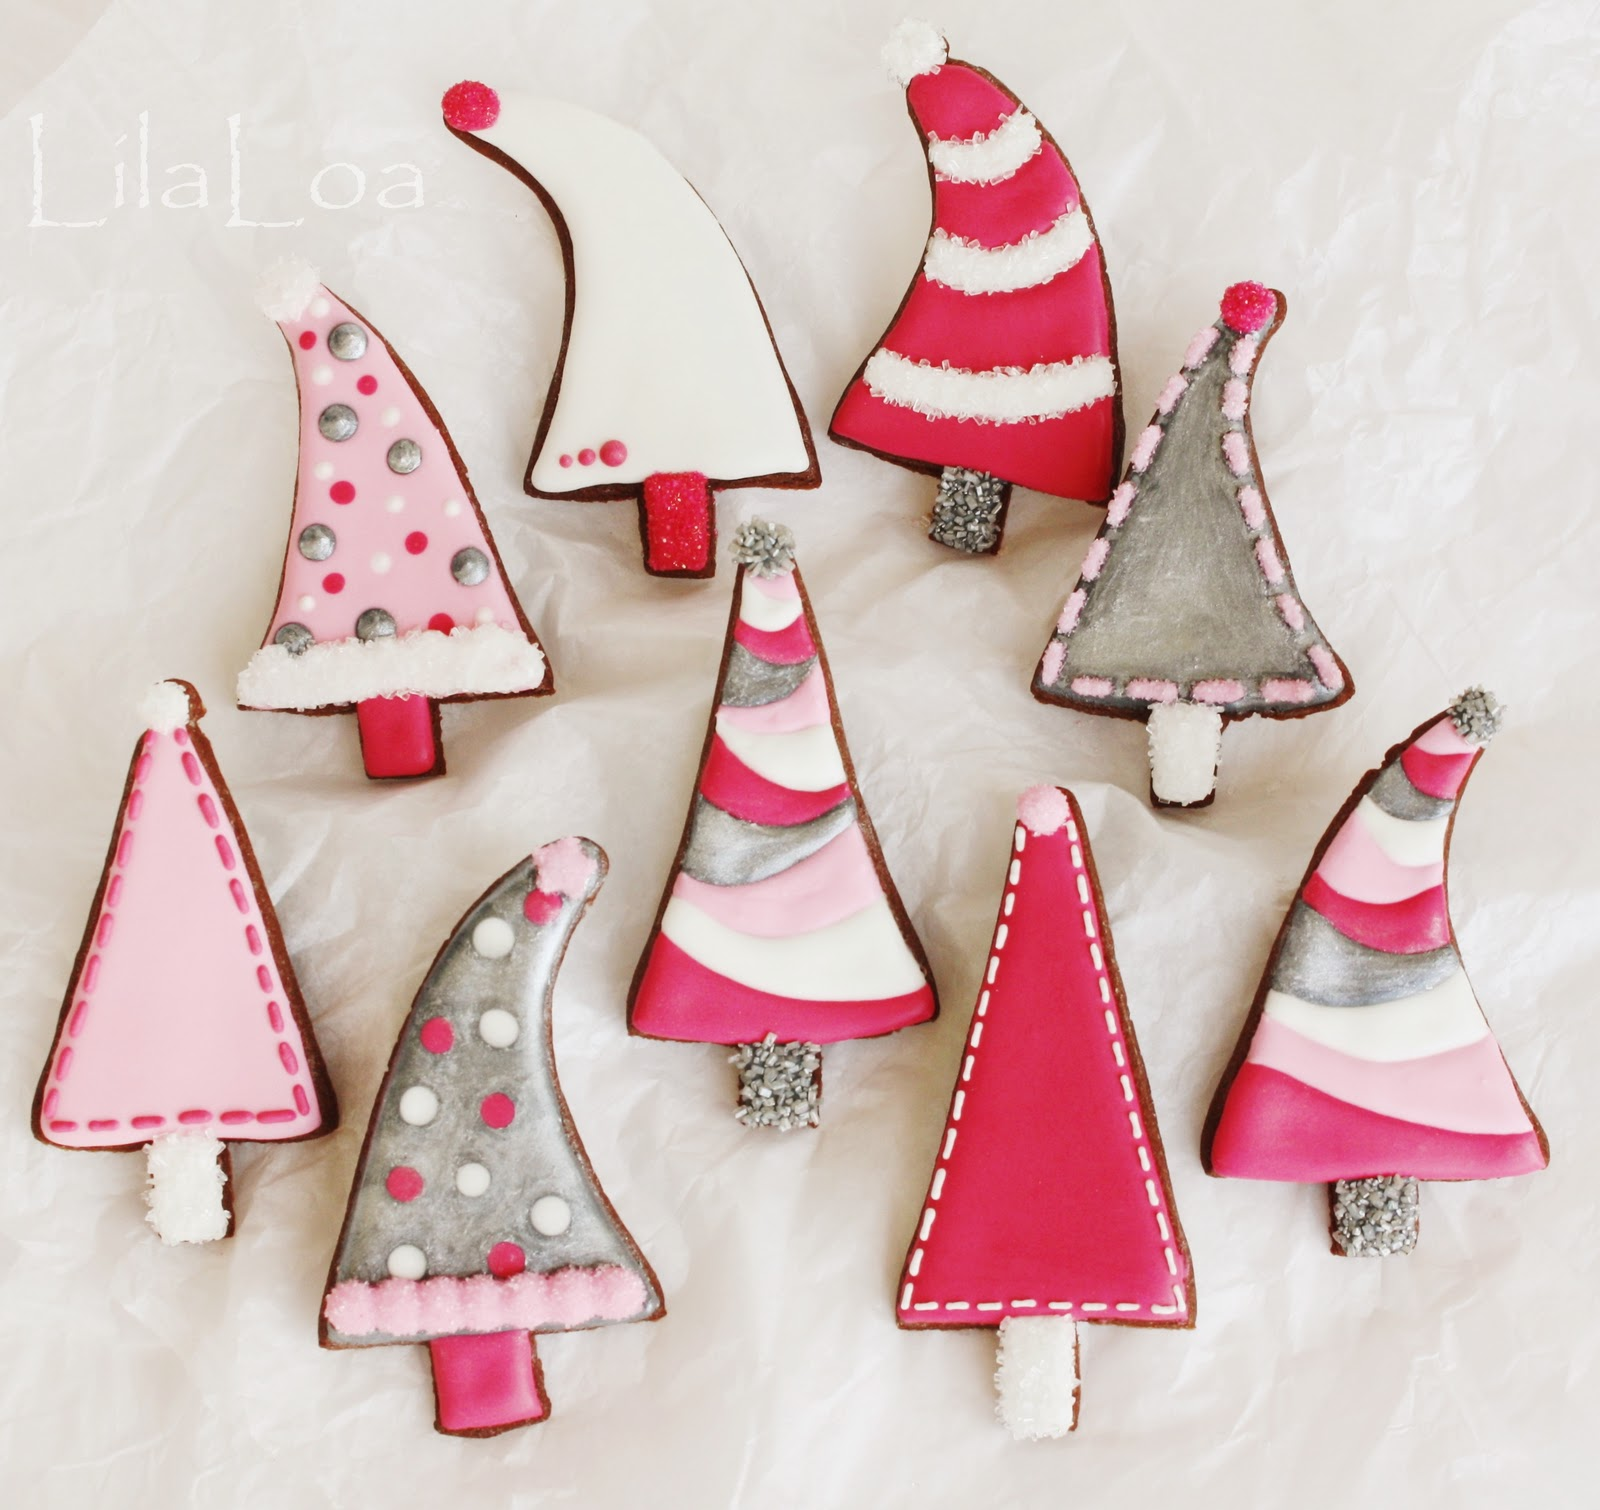 I Made You Some Korean Christmas Trees Ha M Kidding Kid Ahhh So Funny Actually Really Am My Son Told Me